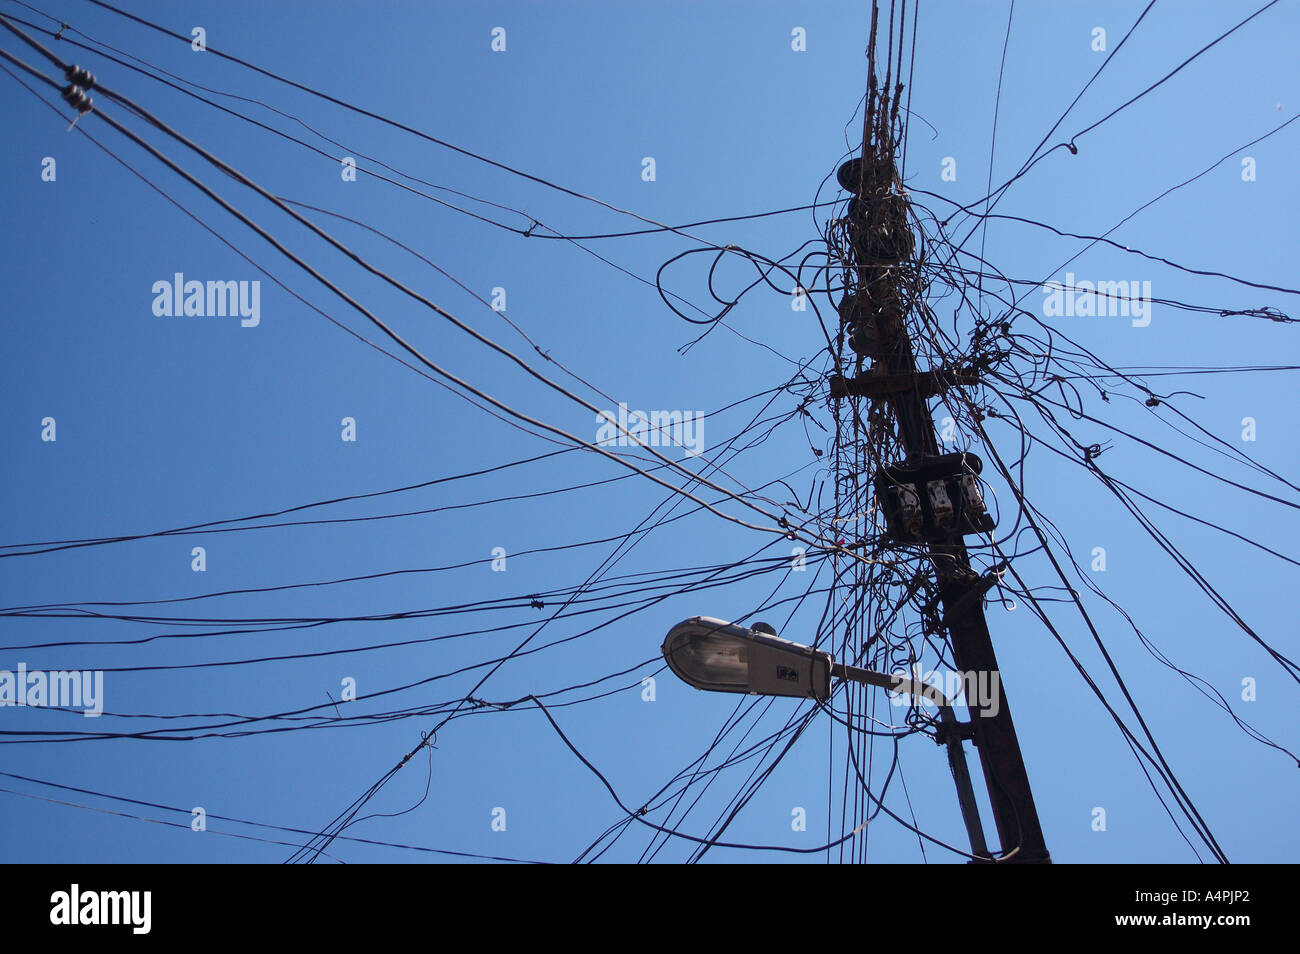 Electricity pole and street light complicated wiring on the pole or ...